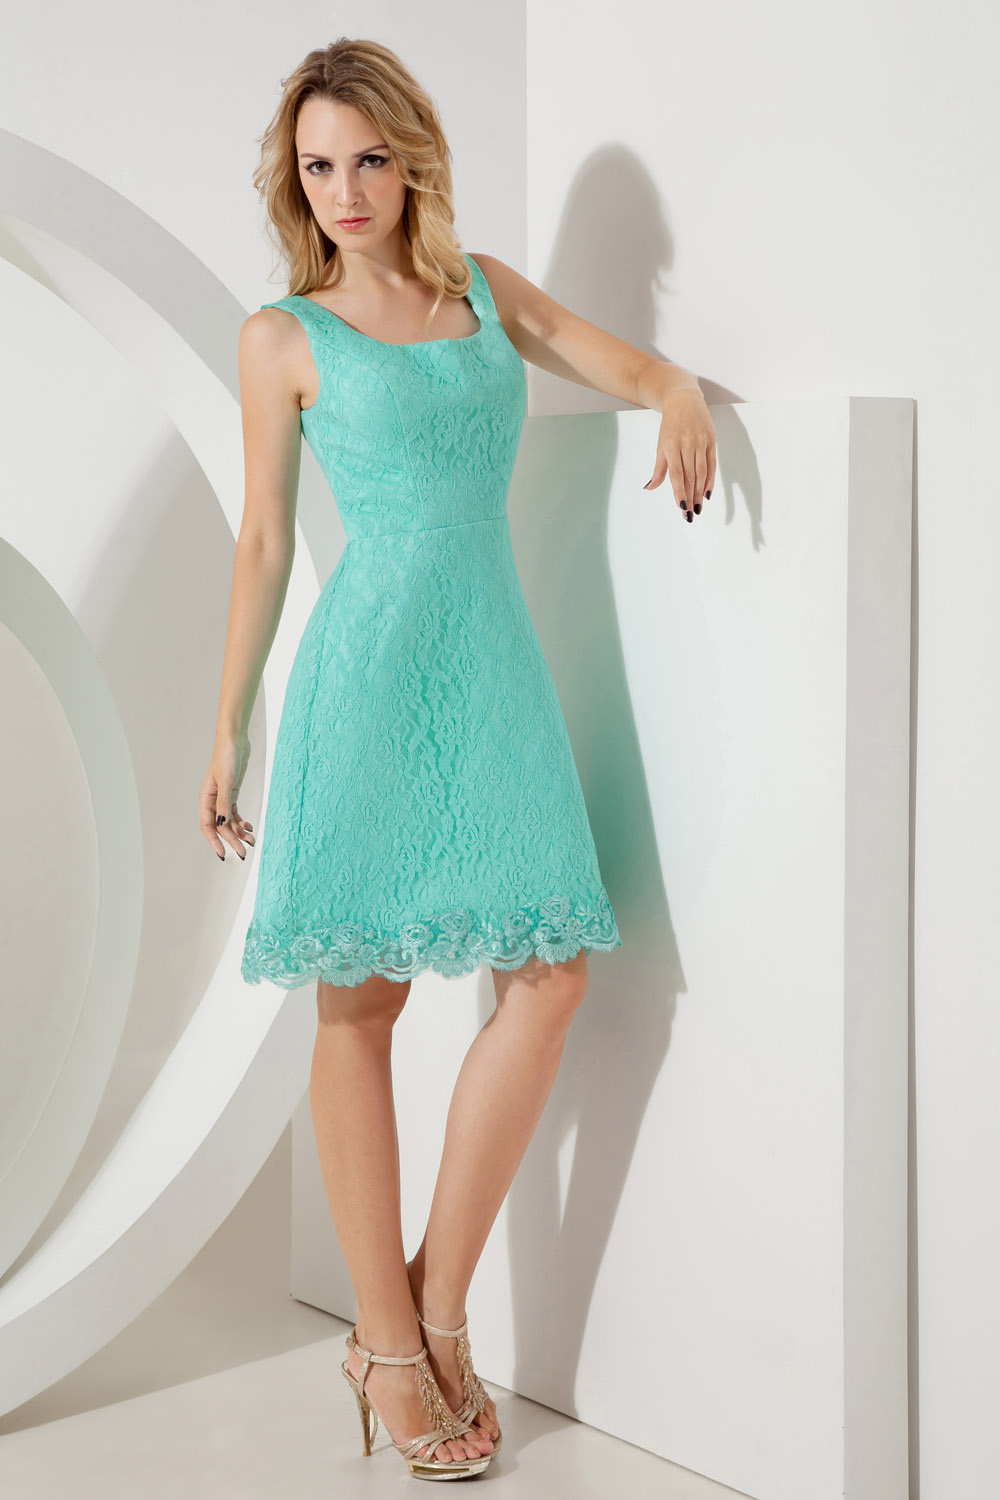 Sheath/Column Spaghetti Straps Knee-length Chiffon Homecoming Dress